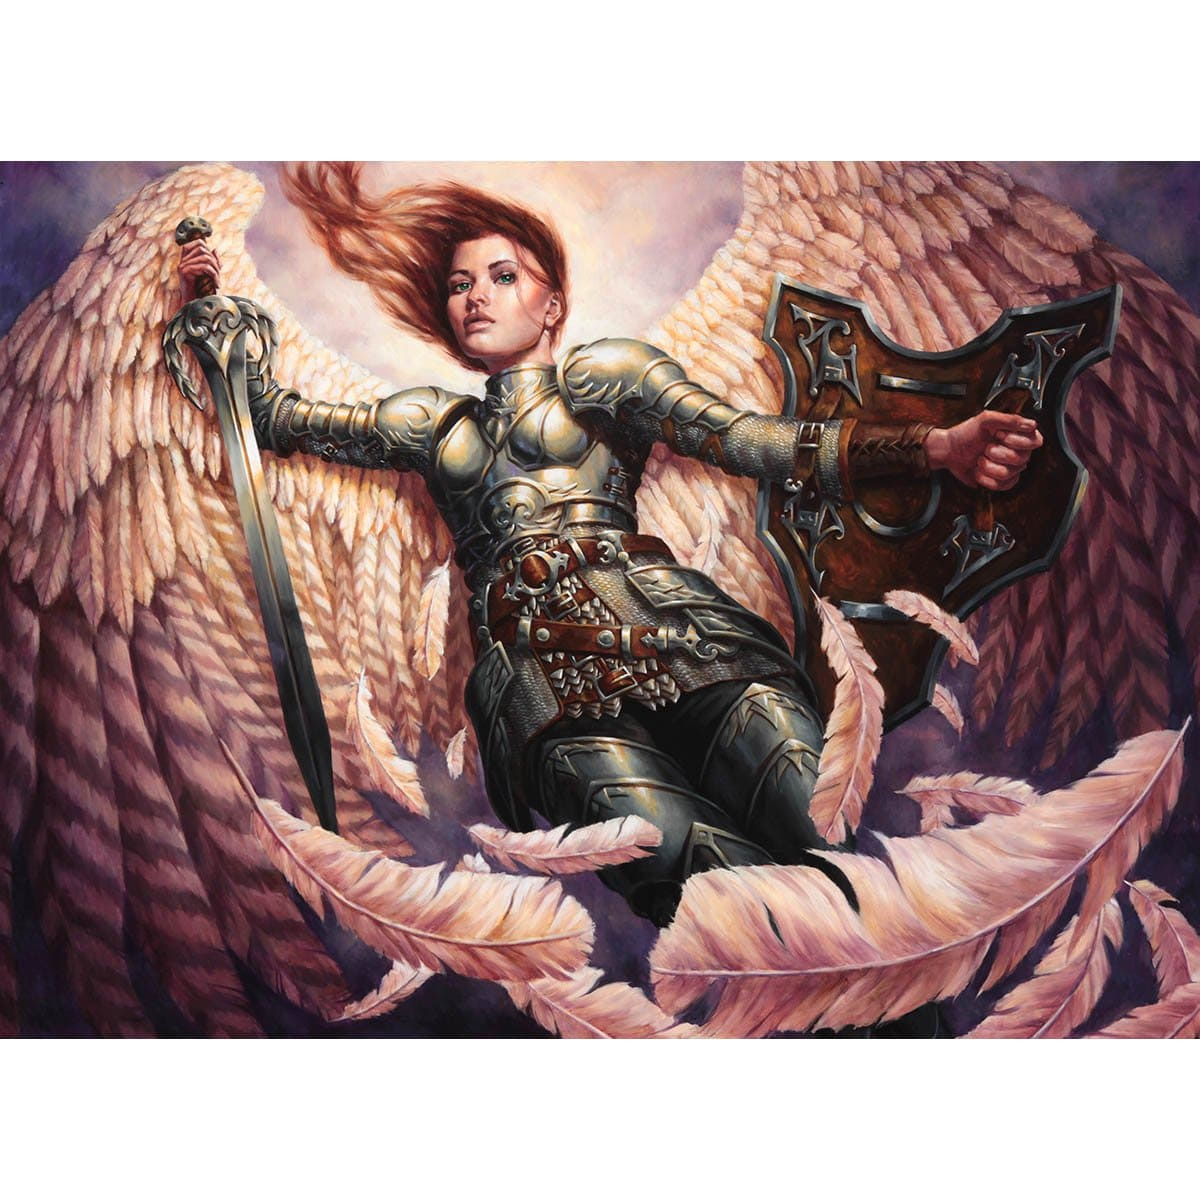 Angelic Accord Print - Print - Original Magic Art - Accessories for Magic the Gathering and other card games